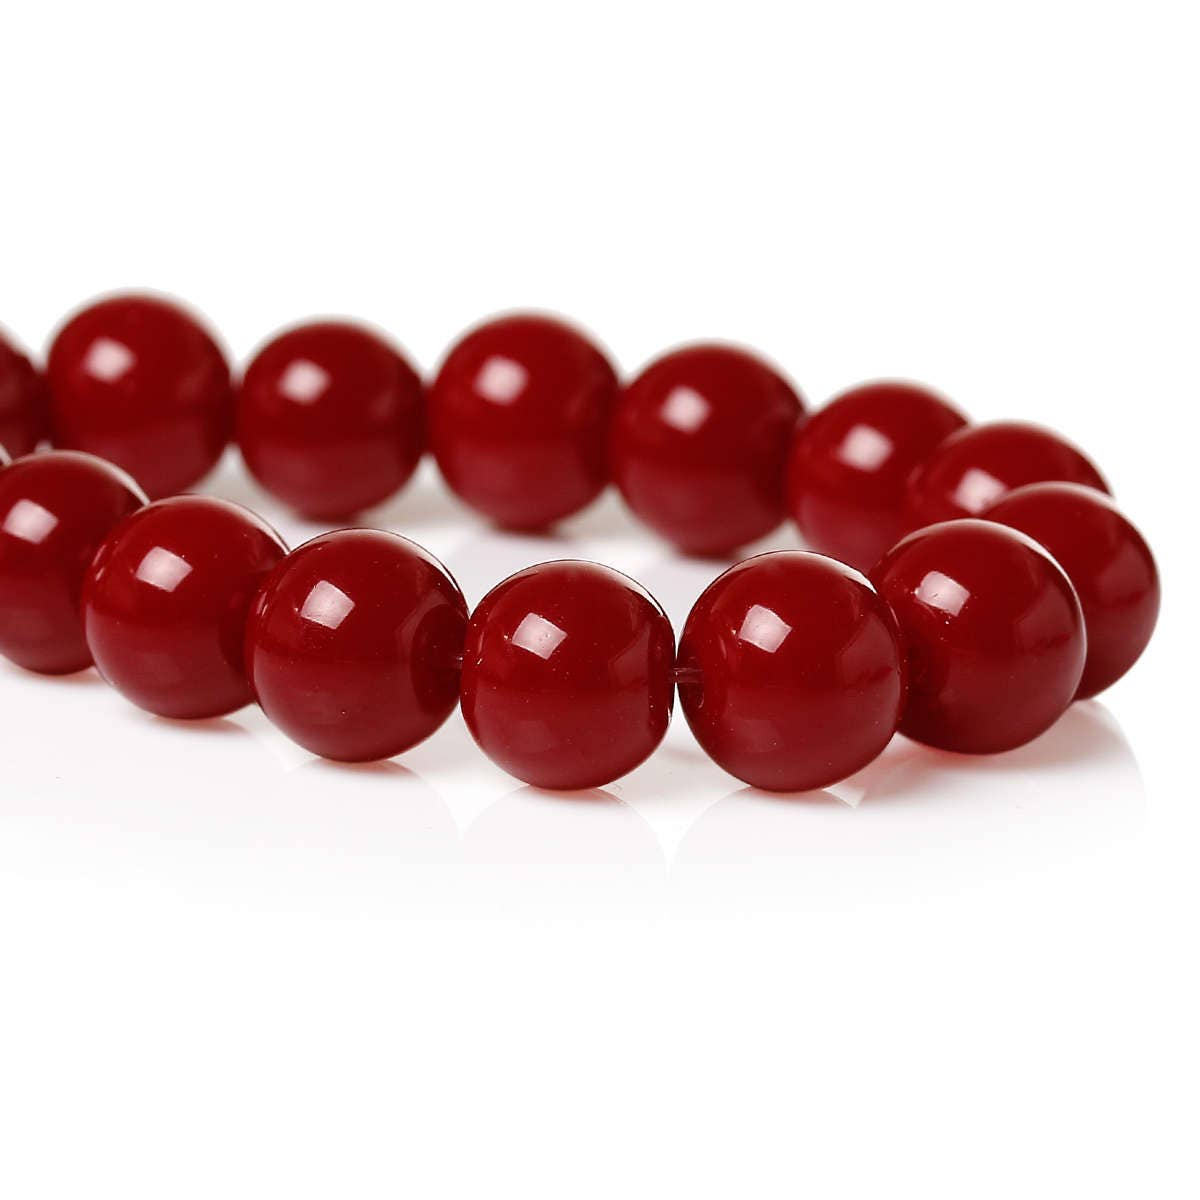 Forty Red Bangles: 40 Red Wine Glass Beads 8mm Jewelry Making Supplies Red